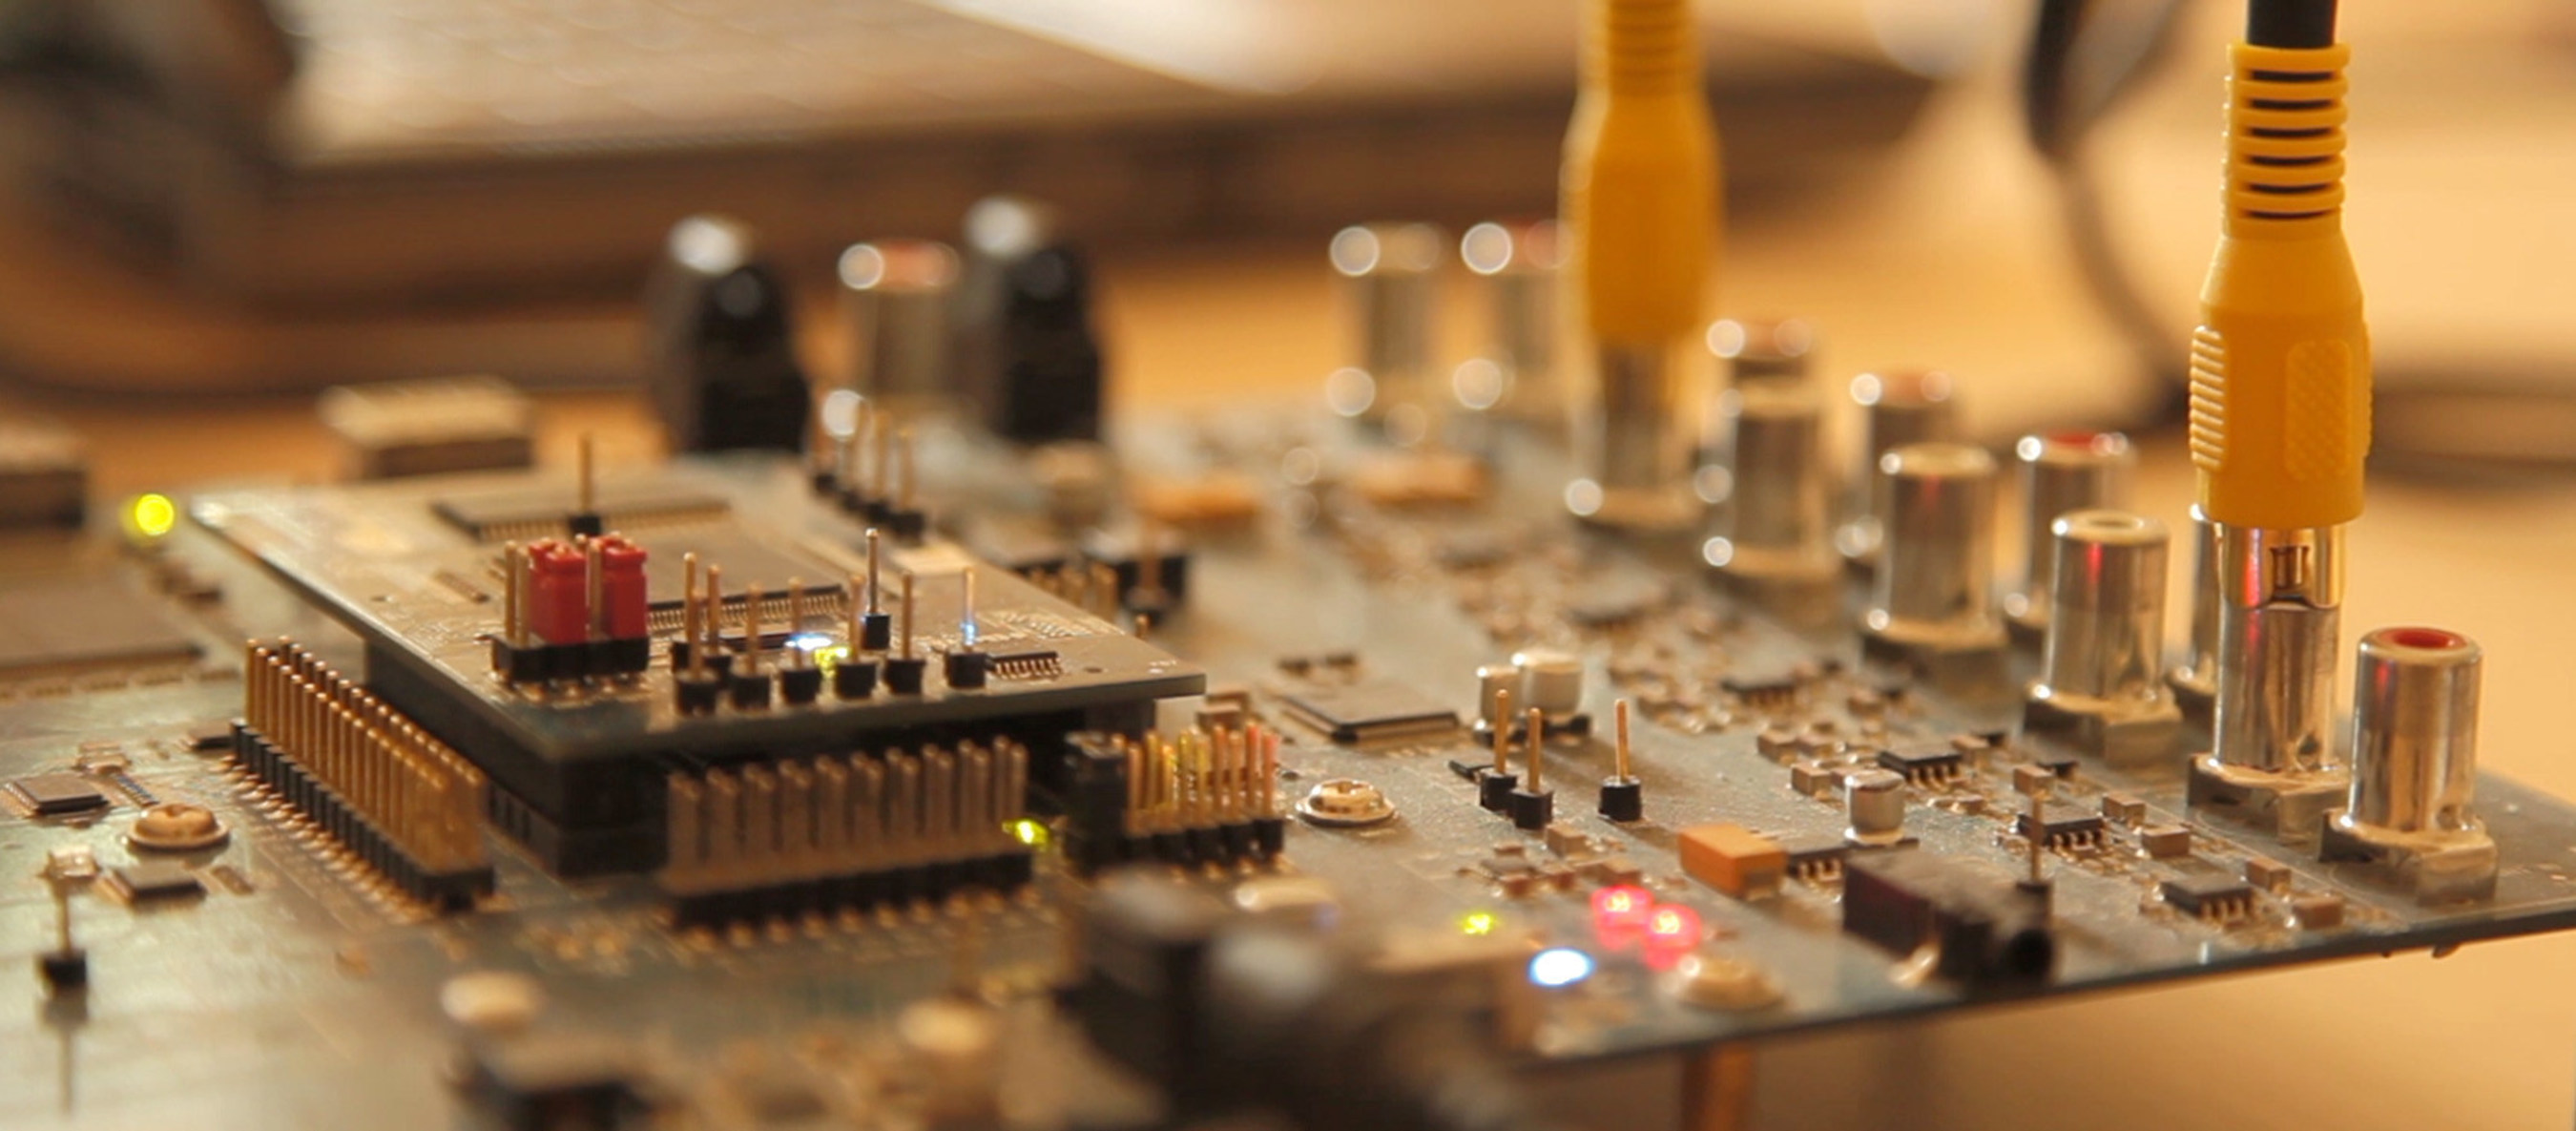 RT-RK Establishes Software Support Agreement for Cirrus Logic Audio DSP Products